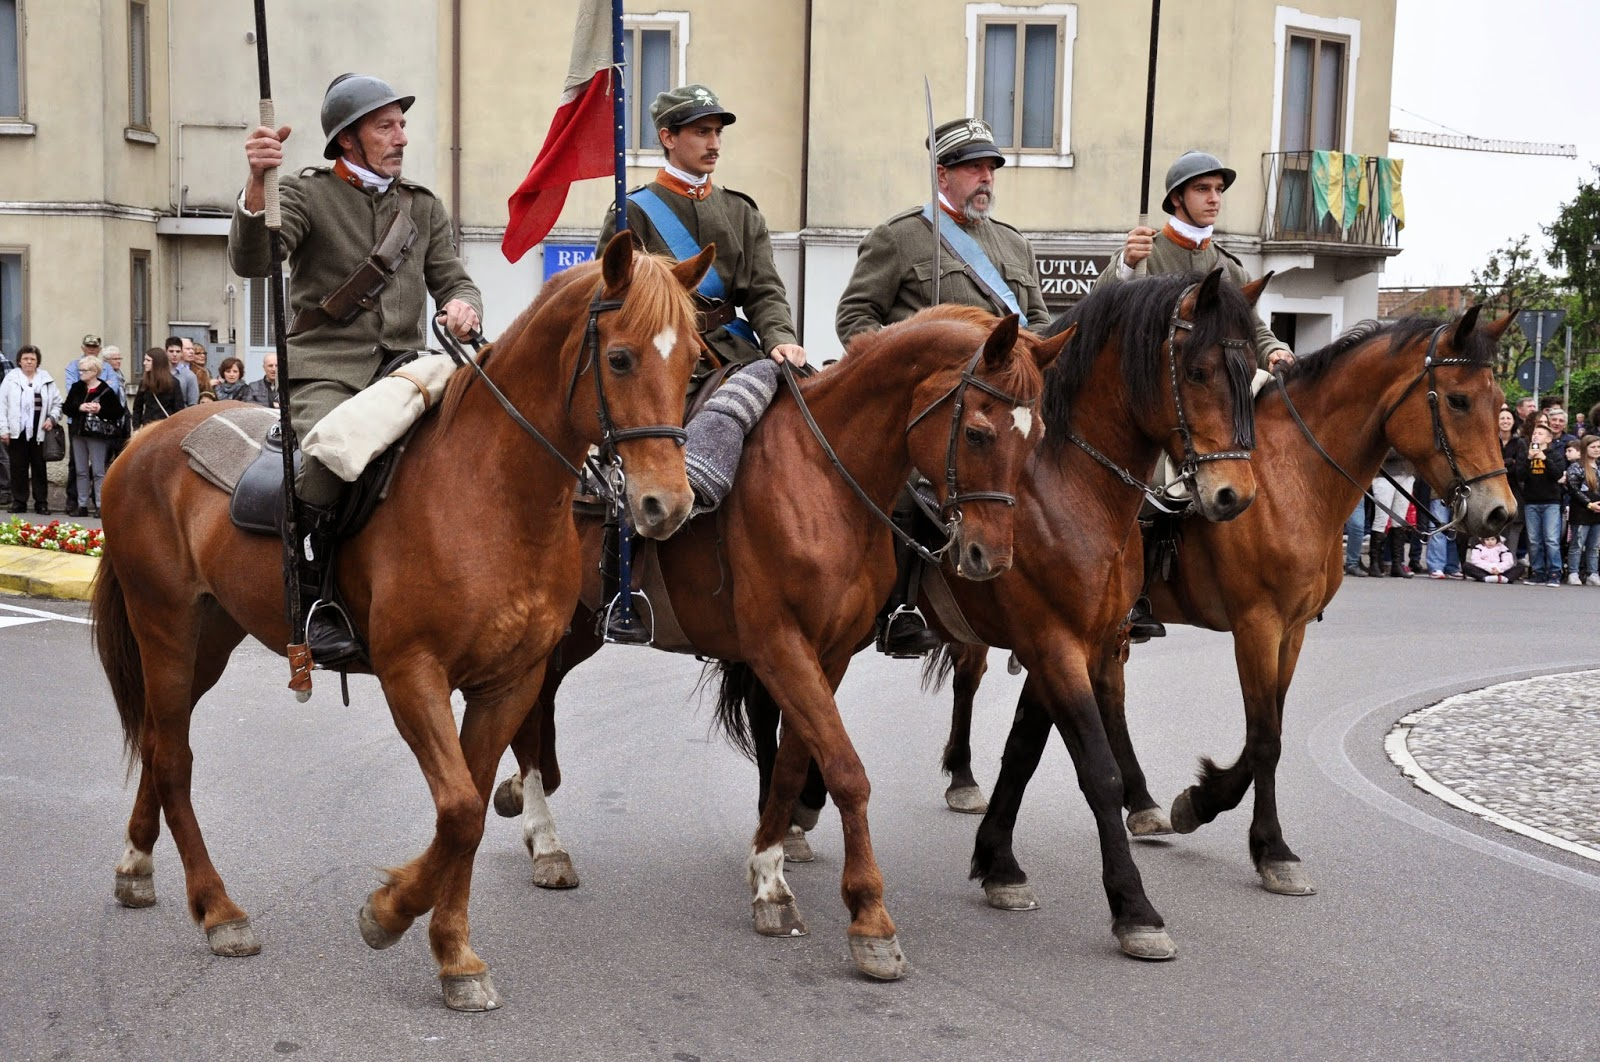 Soldiers on their horses at the Parade, Donkey Race, Romano d'Ezzelino, Veneto, Italy